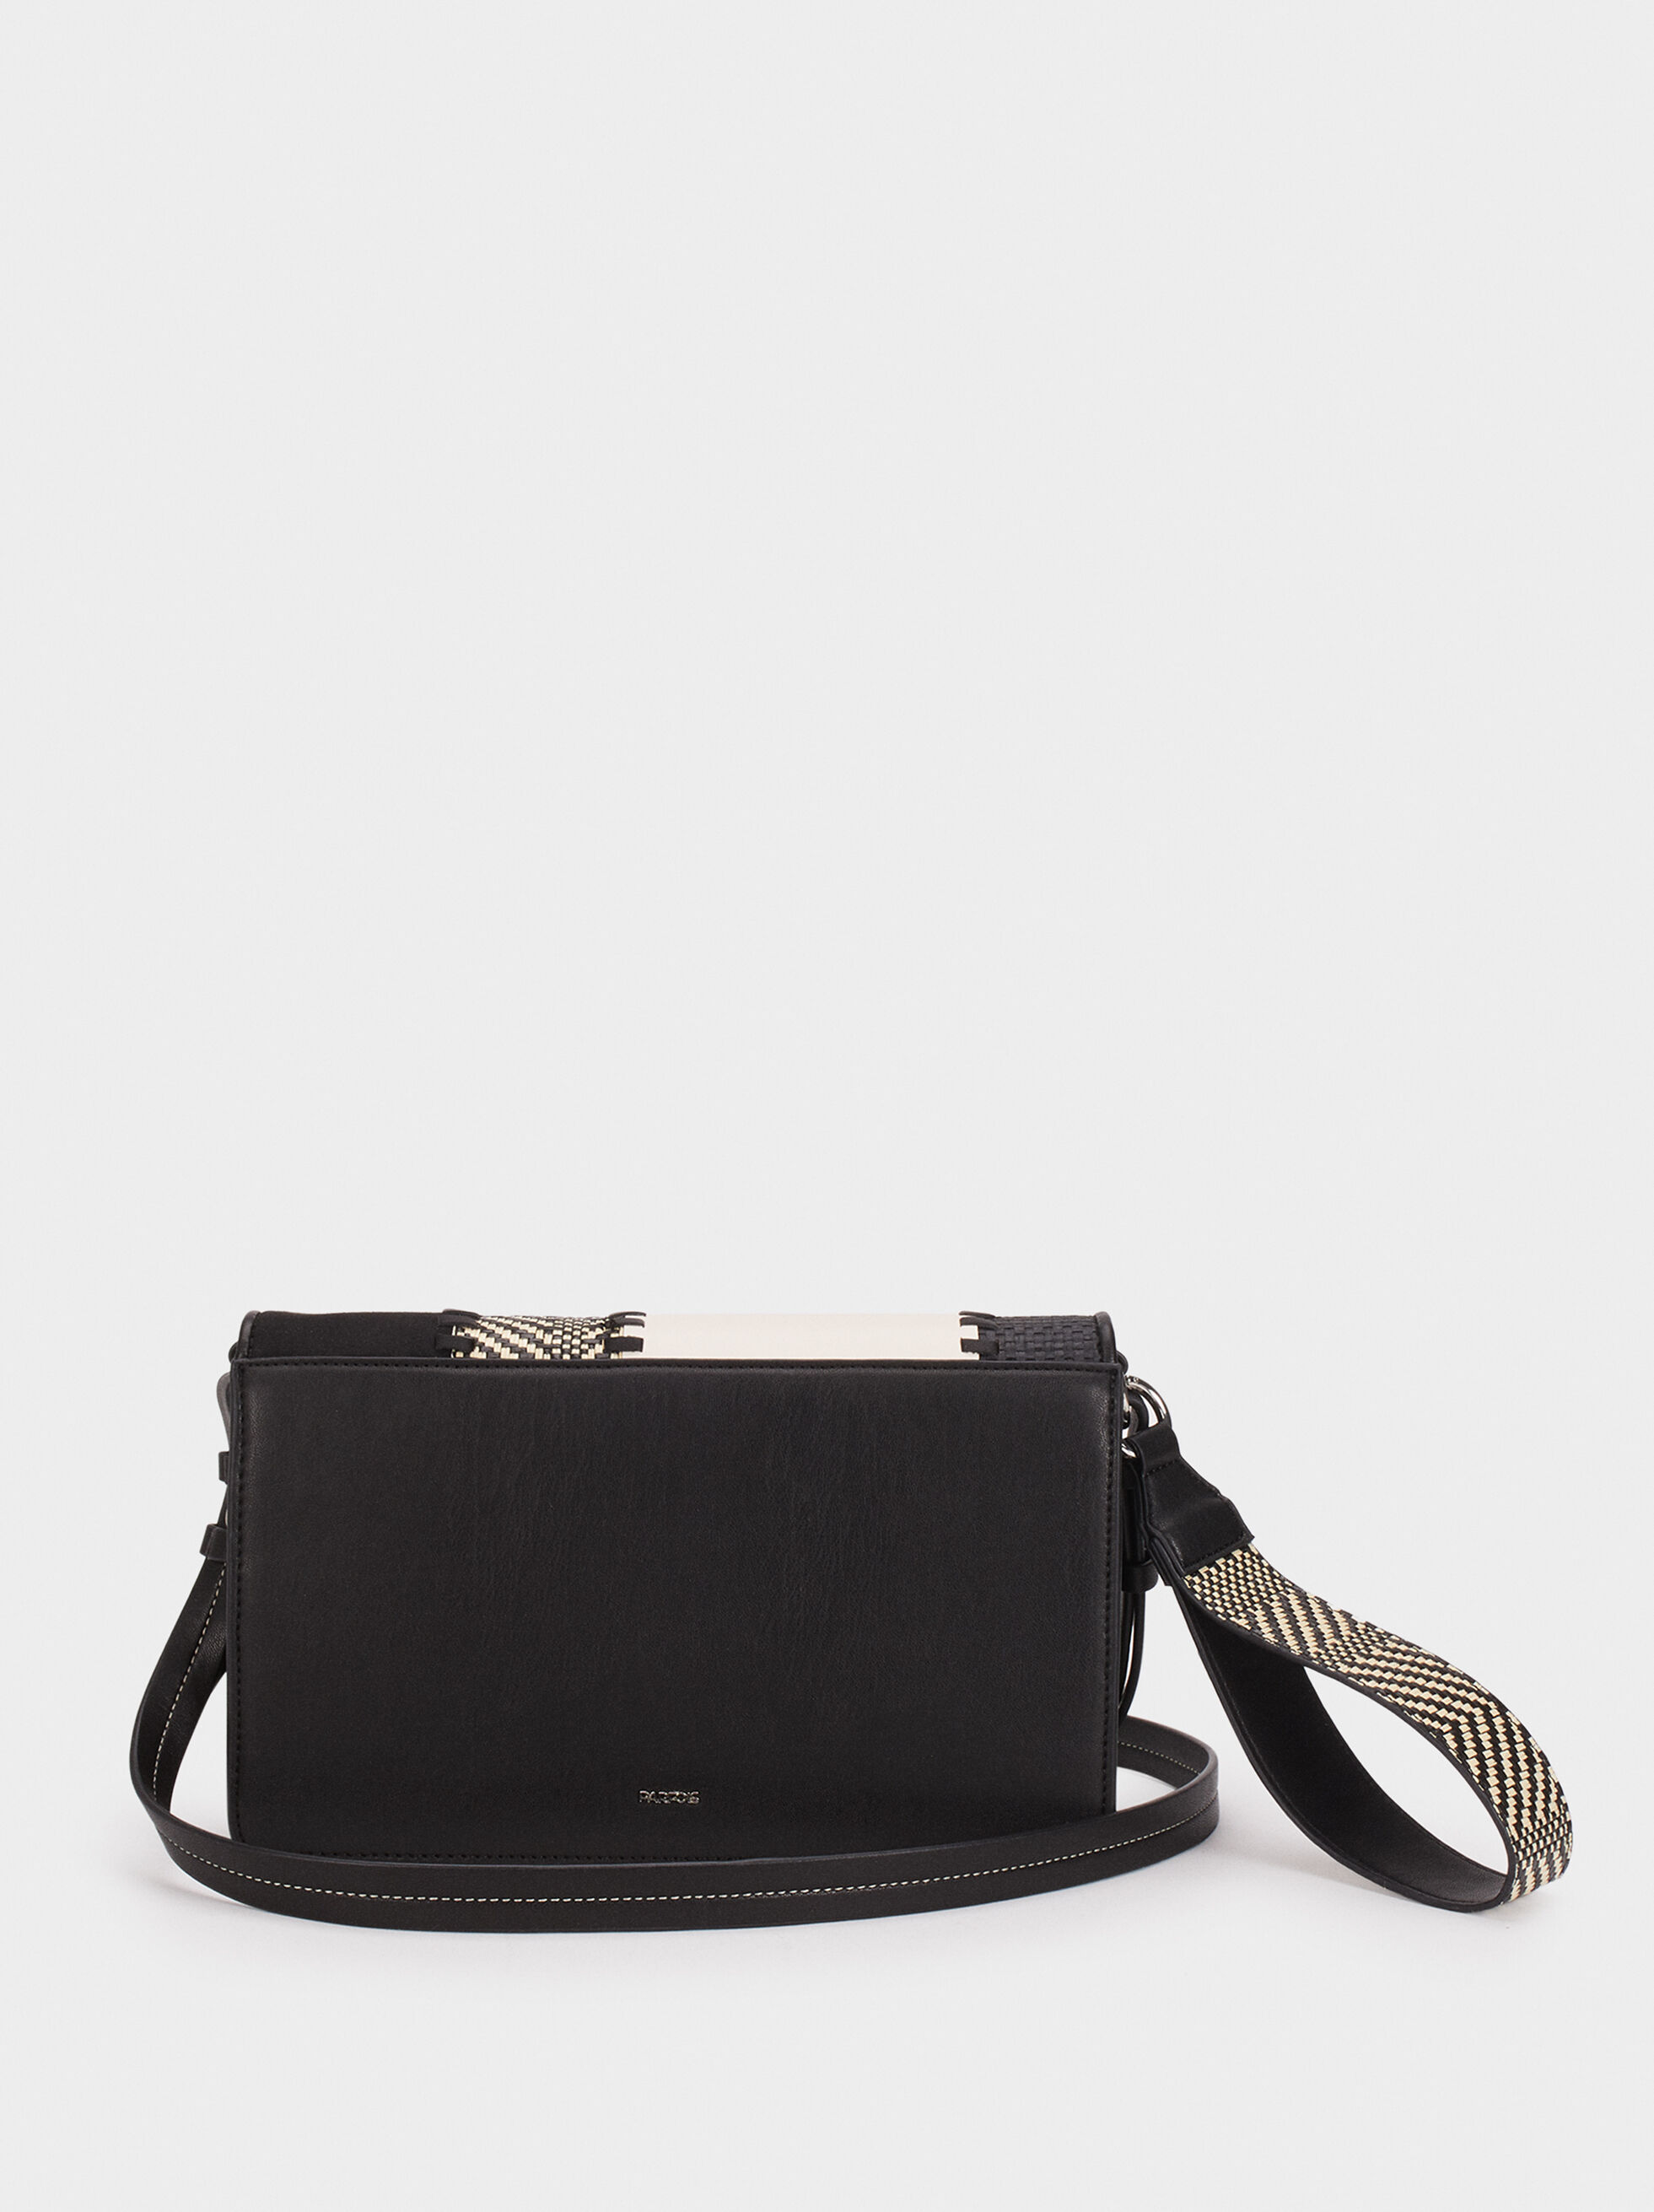 Patchwork Crossbody Bag, Black, hi-res